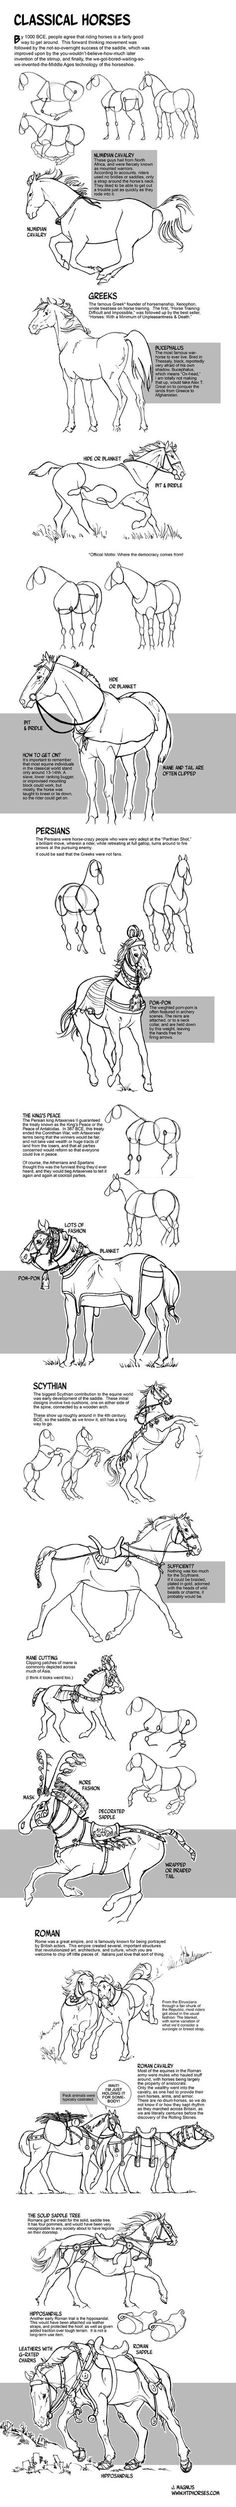 How to Draw Horses of the Classical World by sketcherjak.devia... on @deviantART